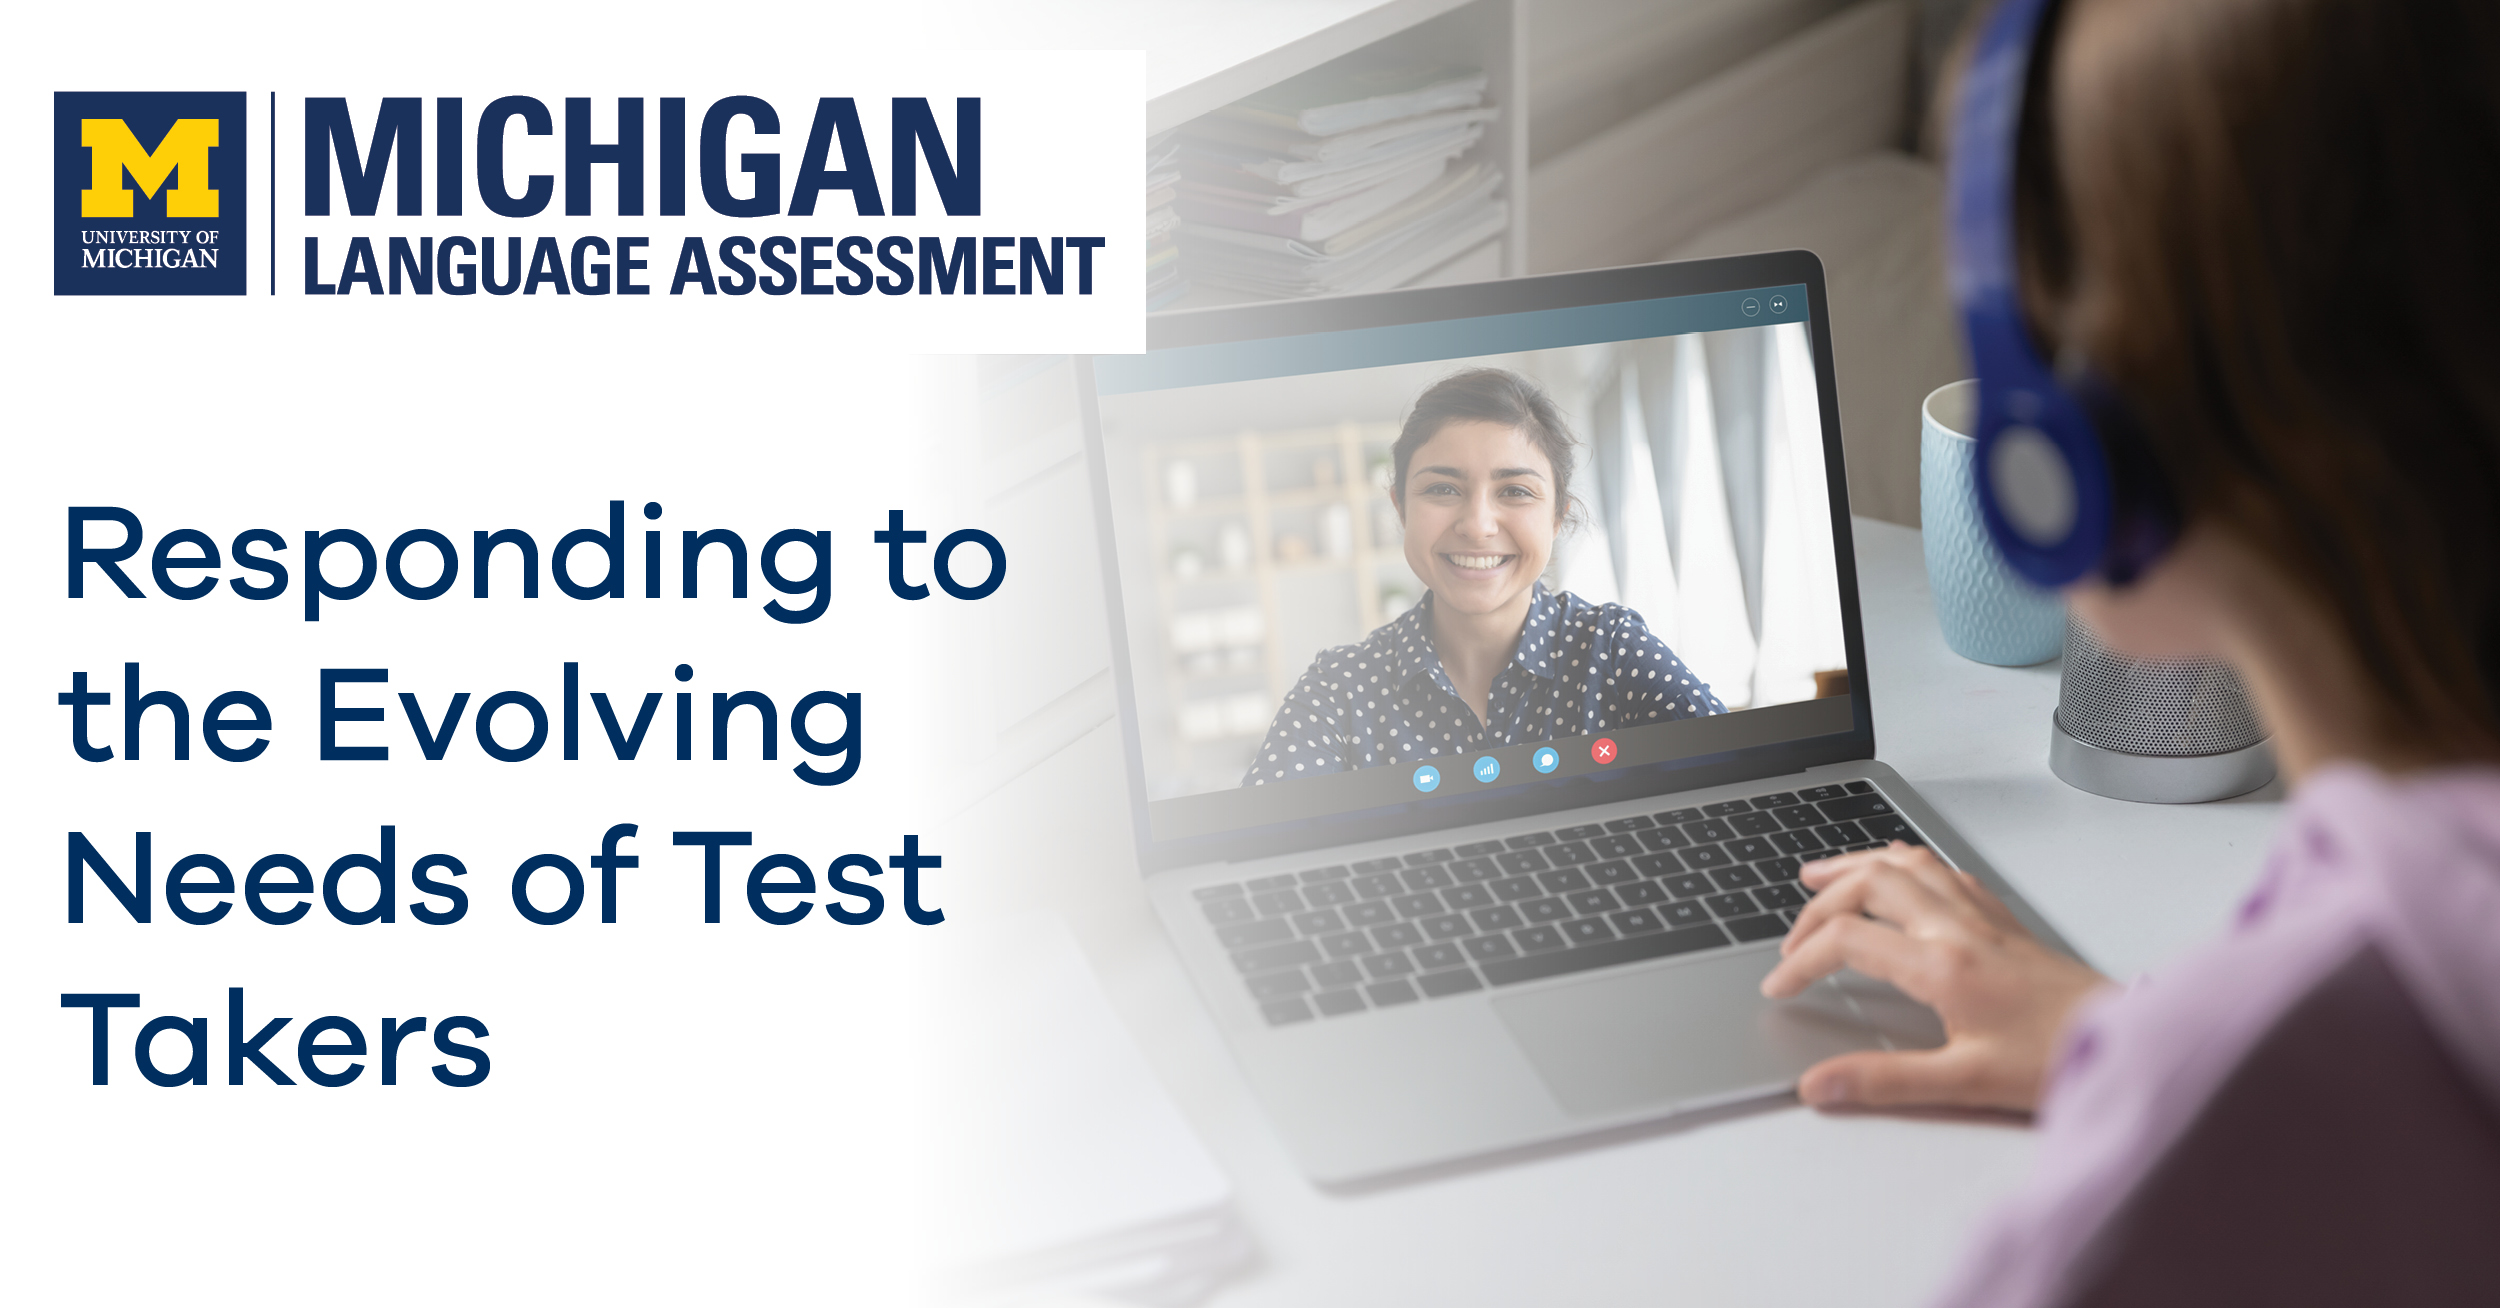 Responding to the Evolving Needs of Test Takers